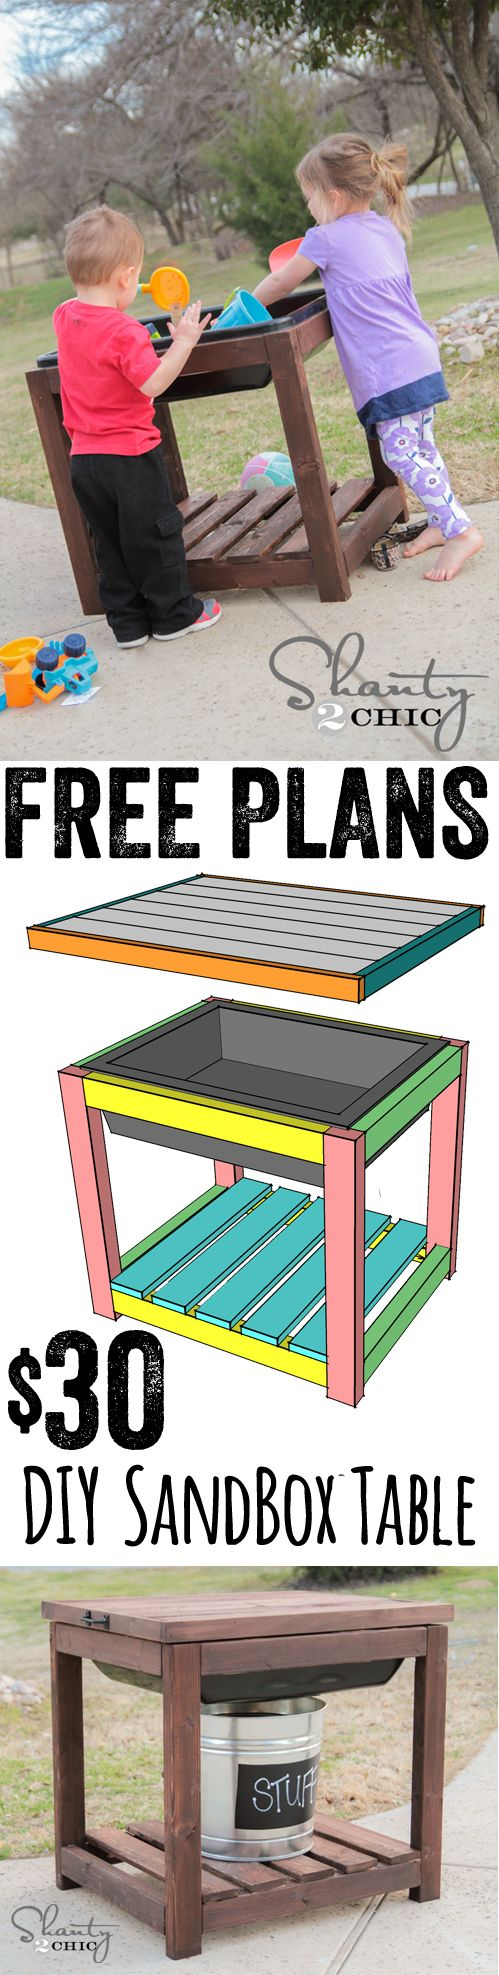 Free Plans DIY Sandbox Table www.shanty-2-chic.com